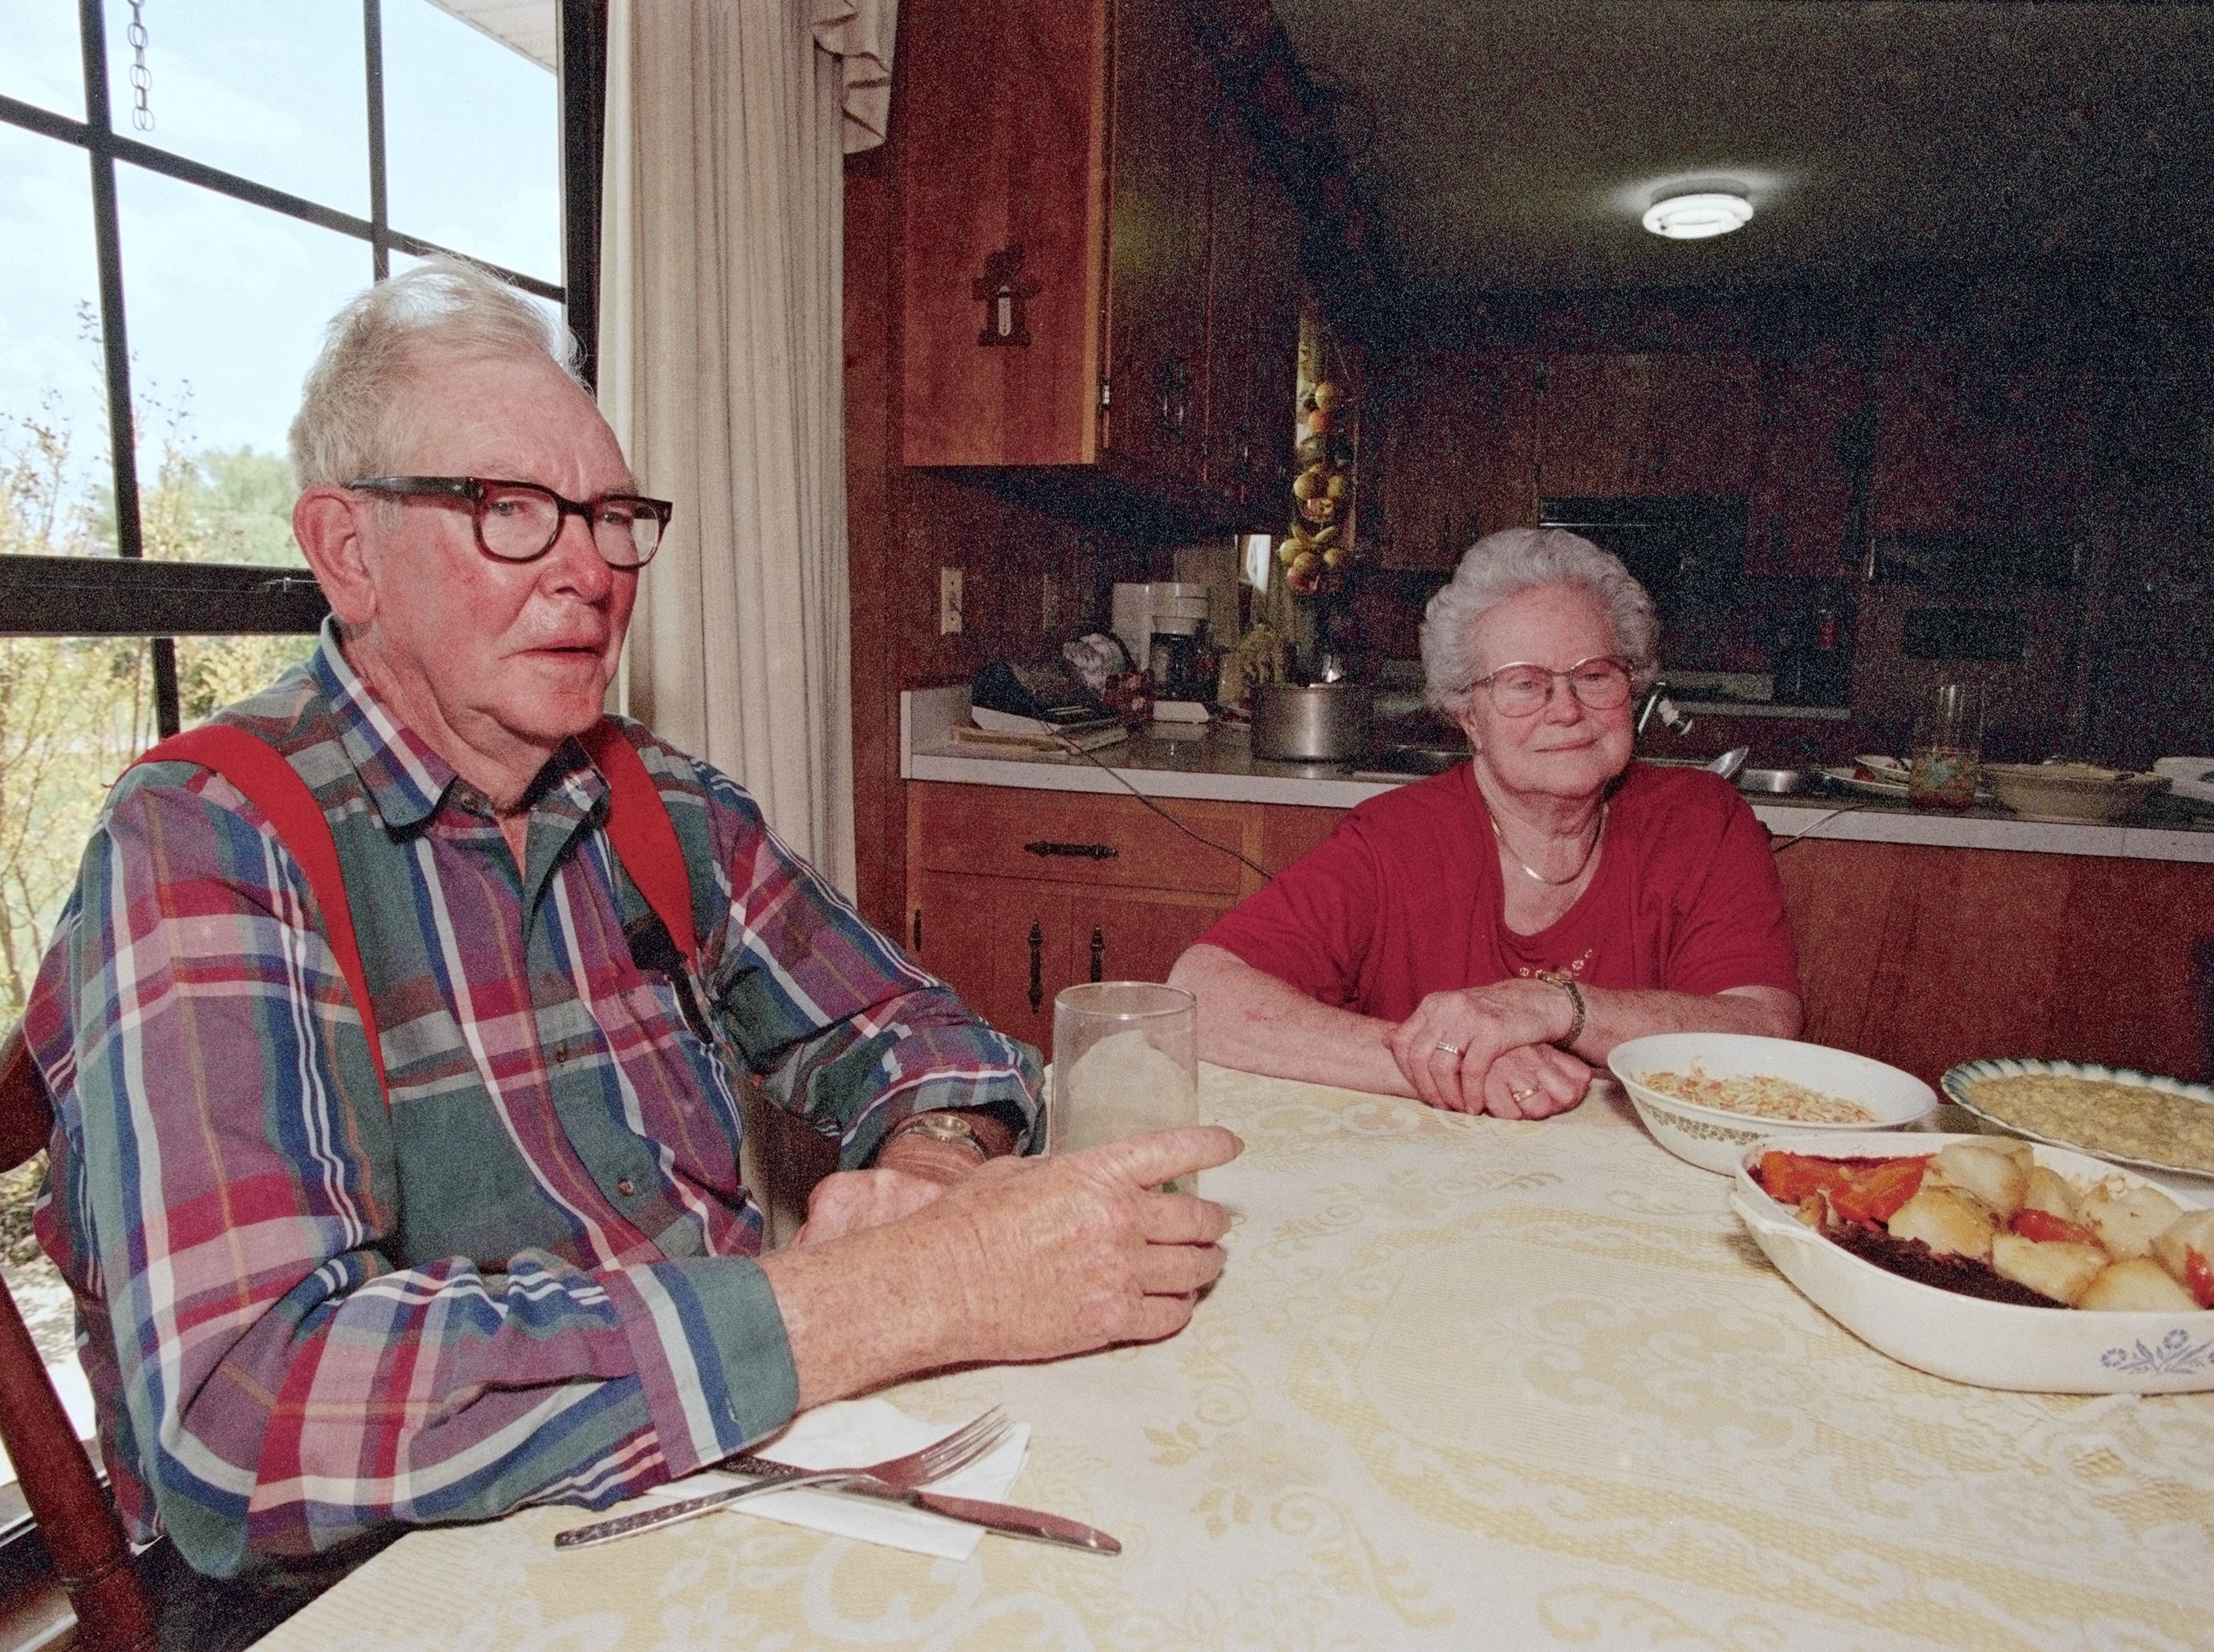 Richard and Hazel Head, the parents of Lady Vol Coach Pat Summitt, are pictured on May 2, 1996 at their home in Henrietta, Tenn.